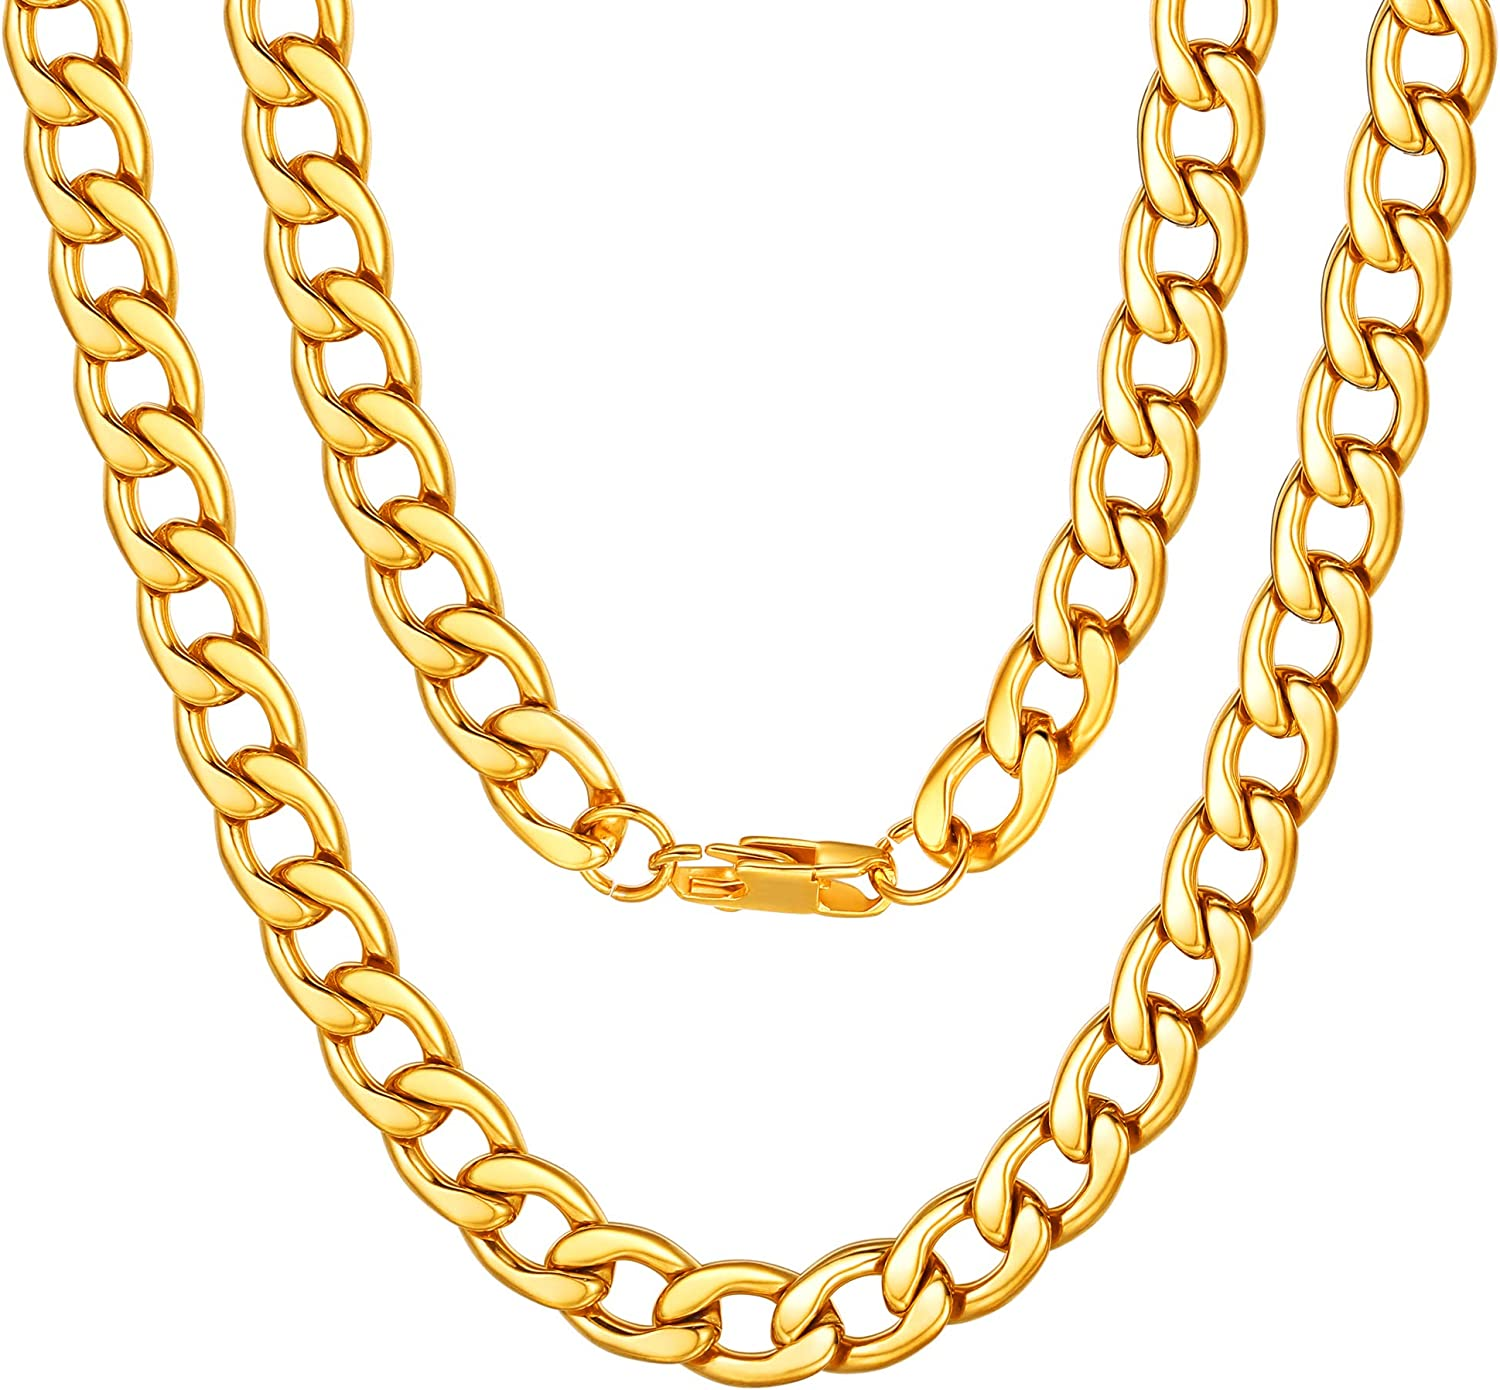 """ChainsPro Mens Sturdy Cuban Chain Necklace, 4/5/6/9/12/13/15 MM Width, 14"""" 18"""" 20"""" 22"""" 24"""" 26"""" 28"""" 30"""" Length, Hip-Hop Cool Style, 316L Stainless Steel/18K Gold Plated/Black-(with Gift Box)"""